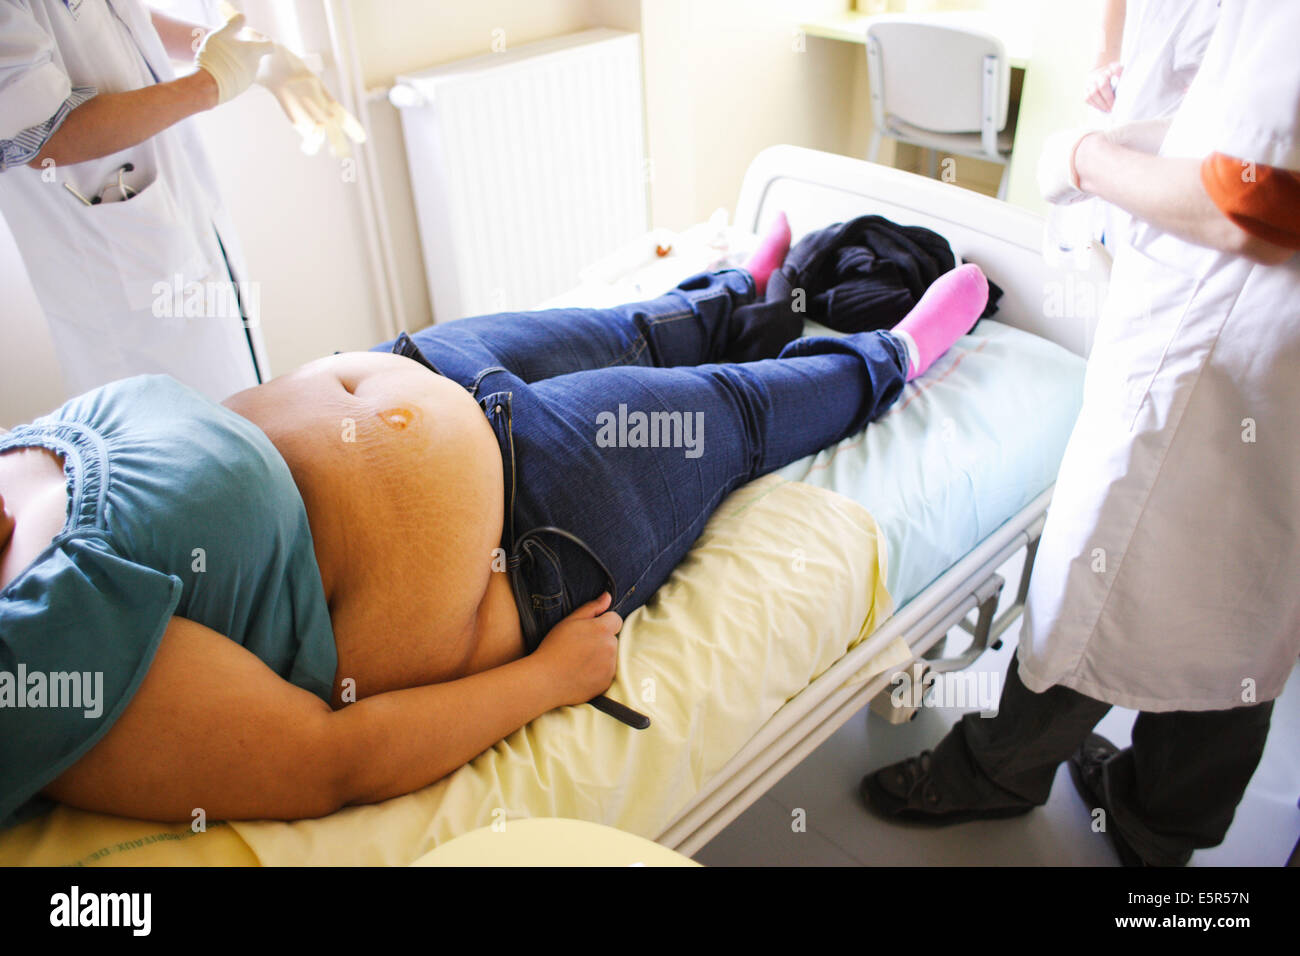 Puncture of fatty tissue from obese persons to be analysed, Departement of Nutrition of Pr Basdevant, endocrinology - Stock Image